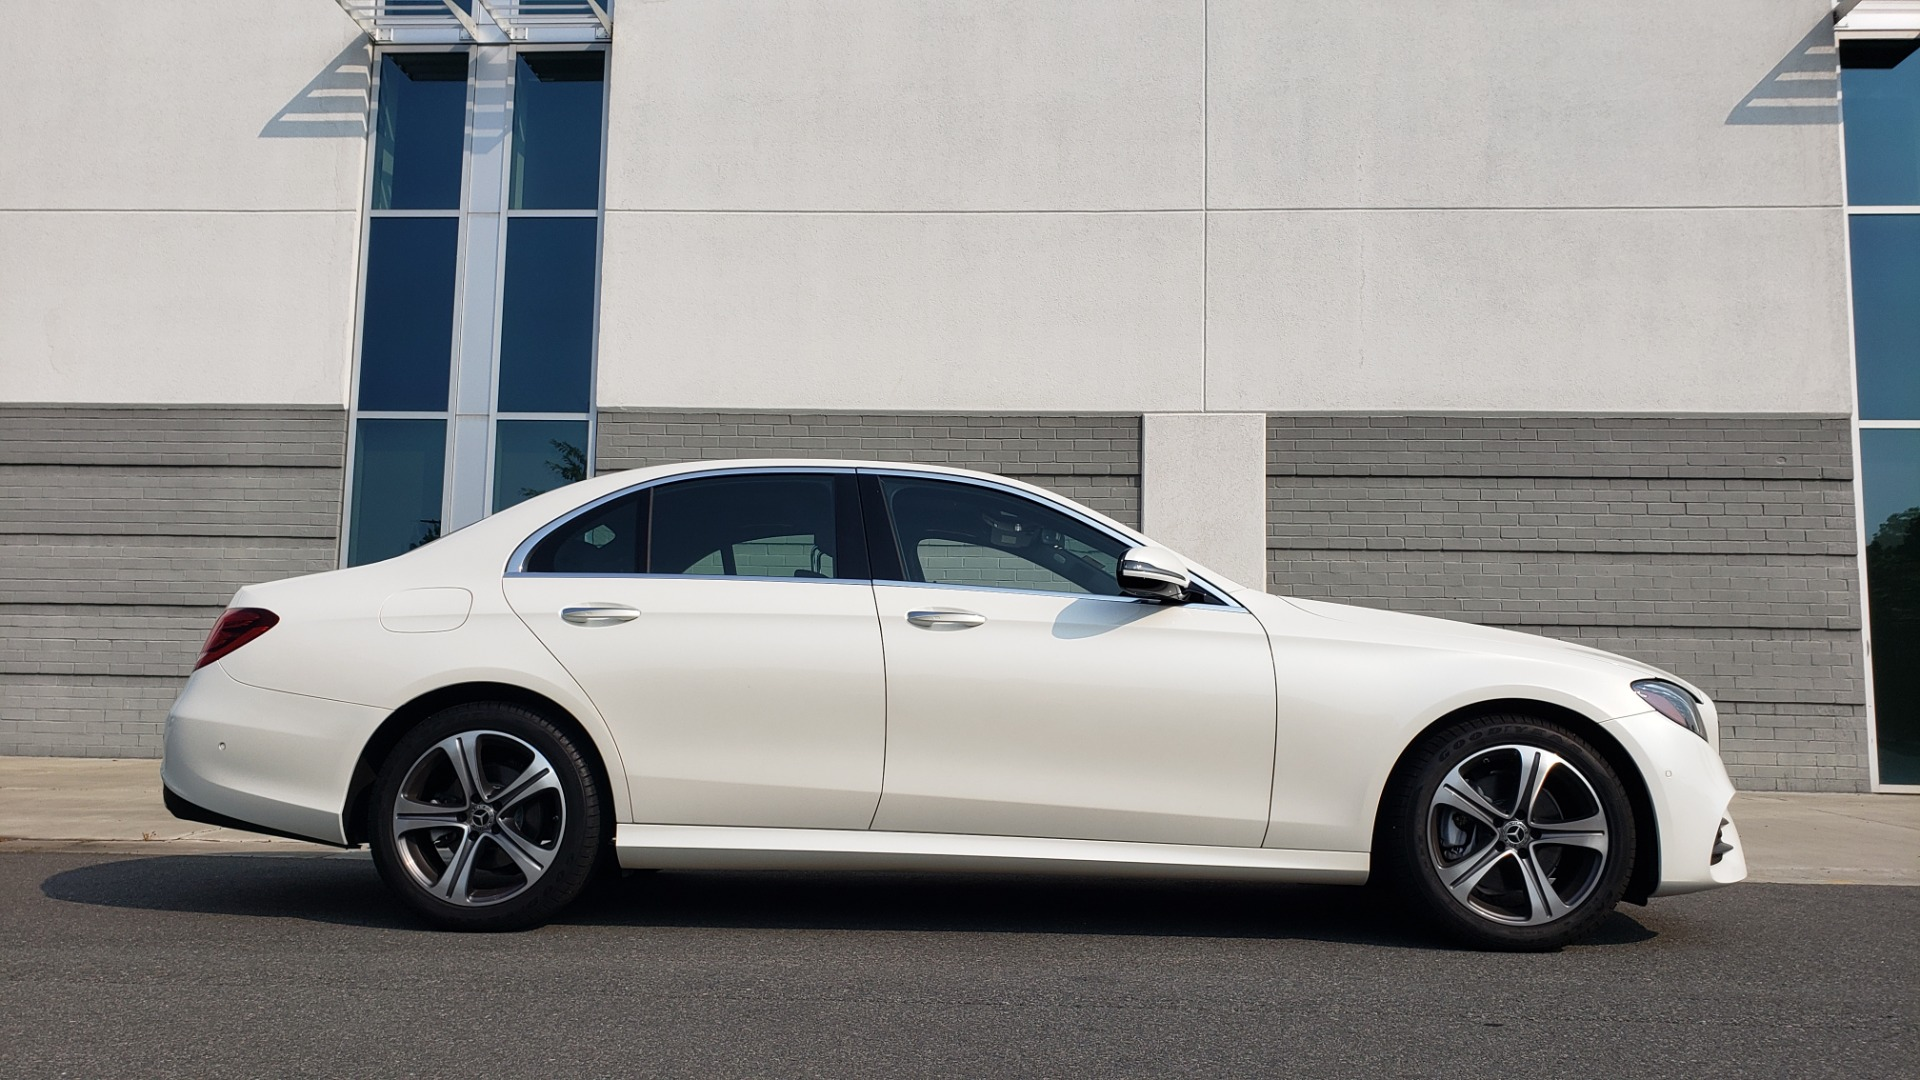 Used 2018 Mercedes-Benz E-CLASS E 300 4MATIC / PREMIUM / NAV / PANO-ROOF / BURMESTER / REARVIEW for sale $41,995 at Formula Imports in Charlotte NC 28227 10